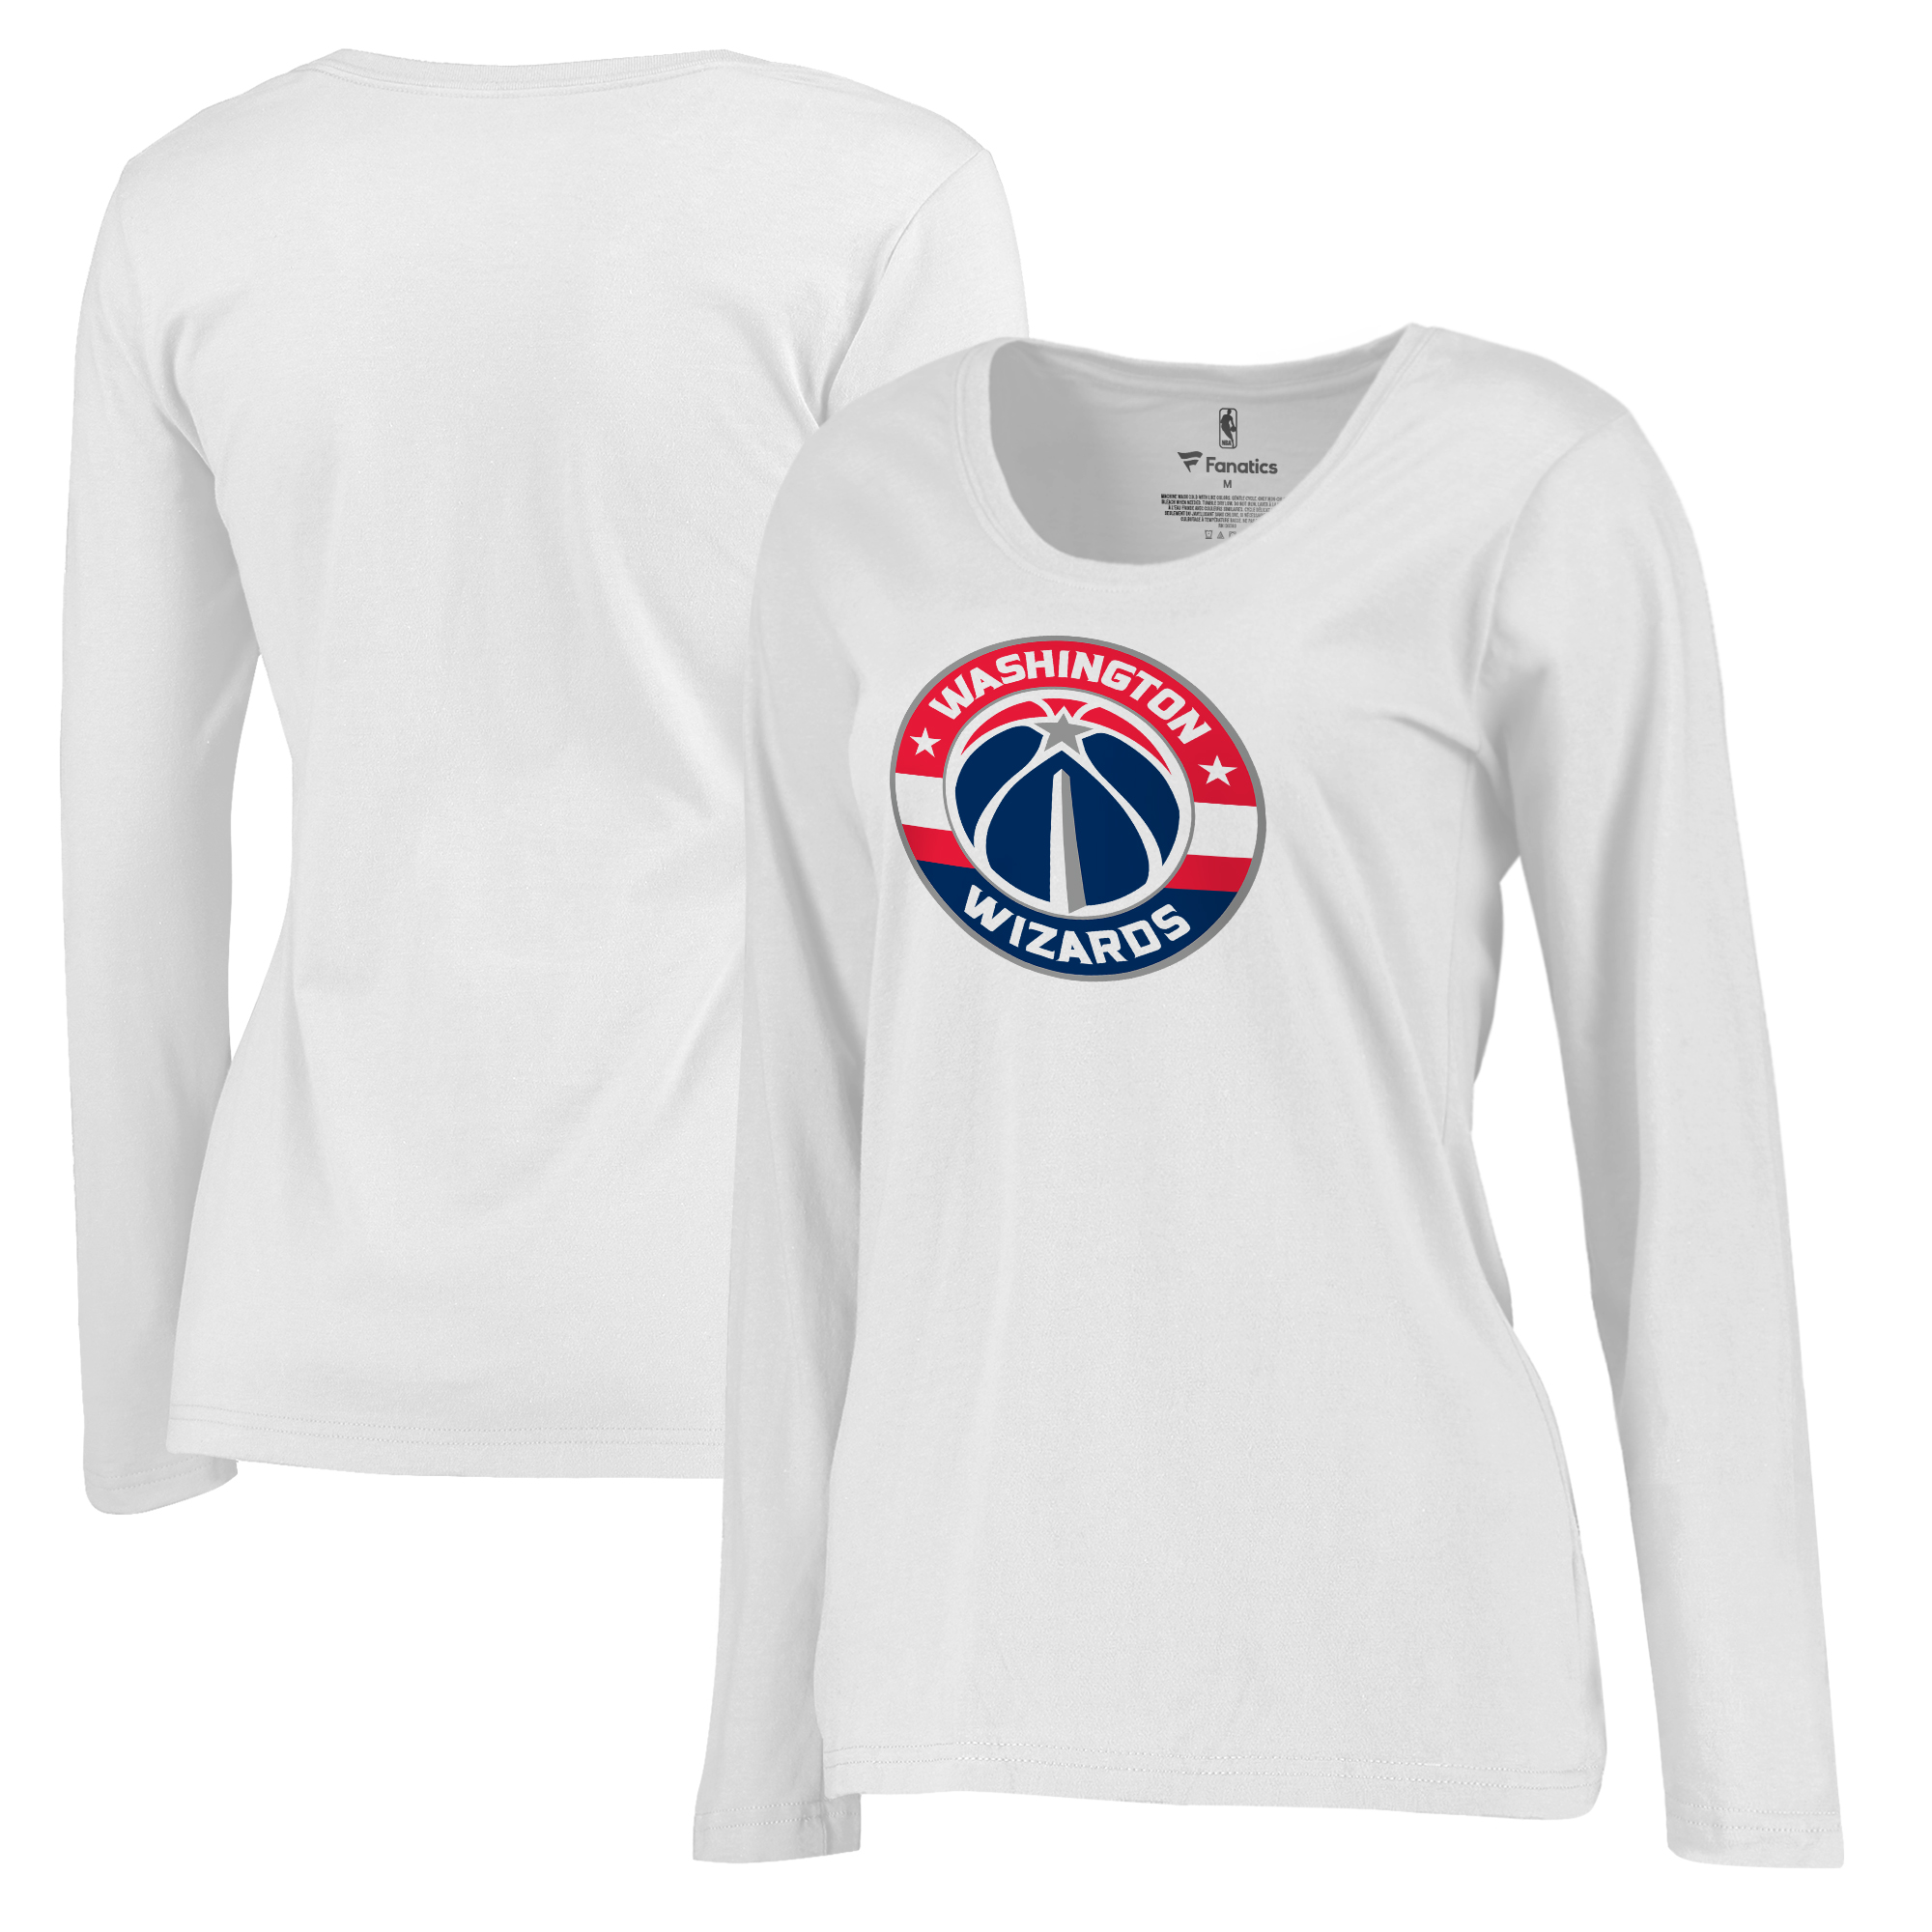 Washington Wizards Fanatics Branded Women's Plus Sizes Team Primary Logo Long Sleeve T-Shirt - White